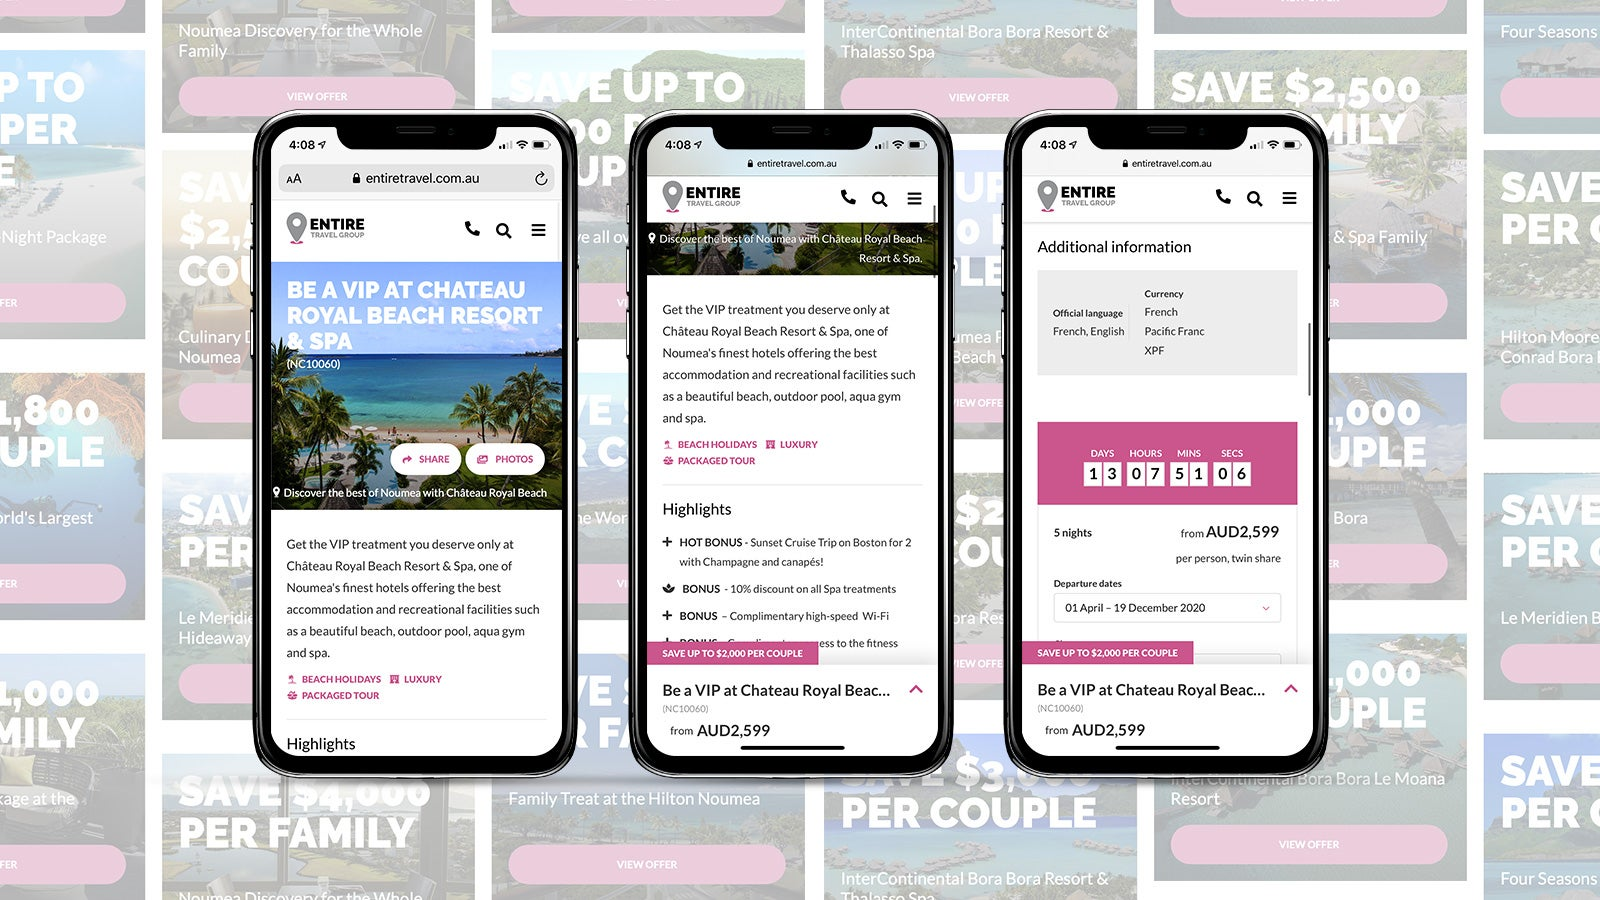 Entire Travel Group gallery image showing a variety of site images on 3 mobile phones, side by side